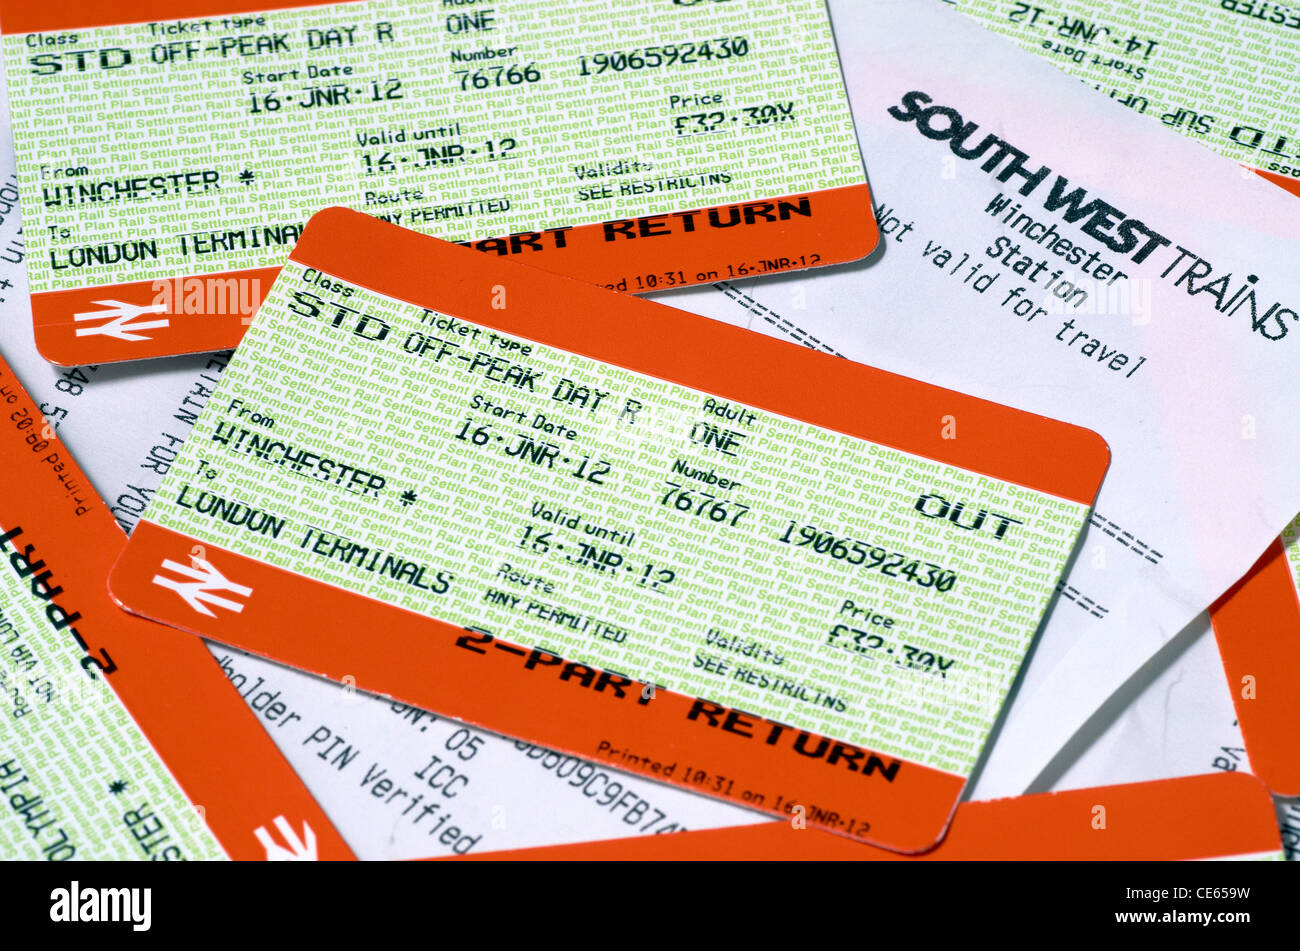 Train tickets and credit card receipt - Stock Image